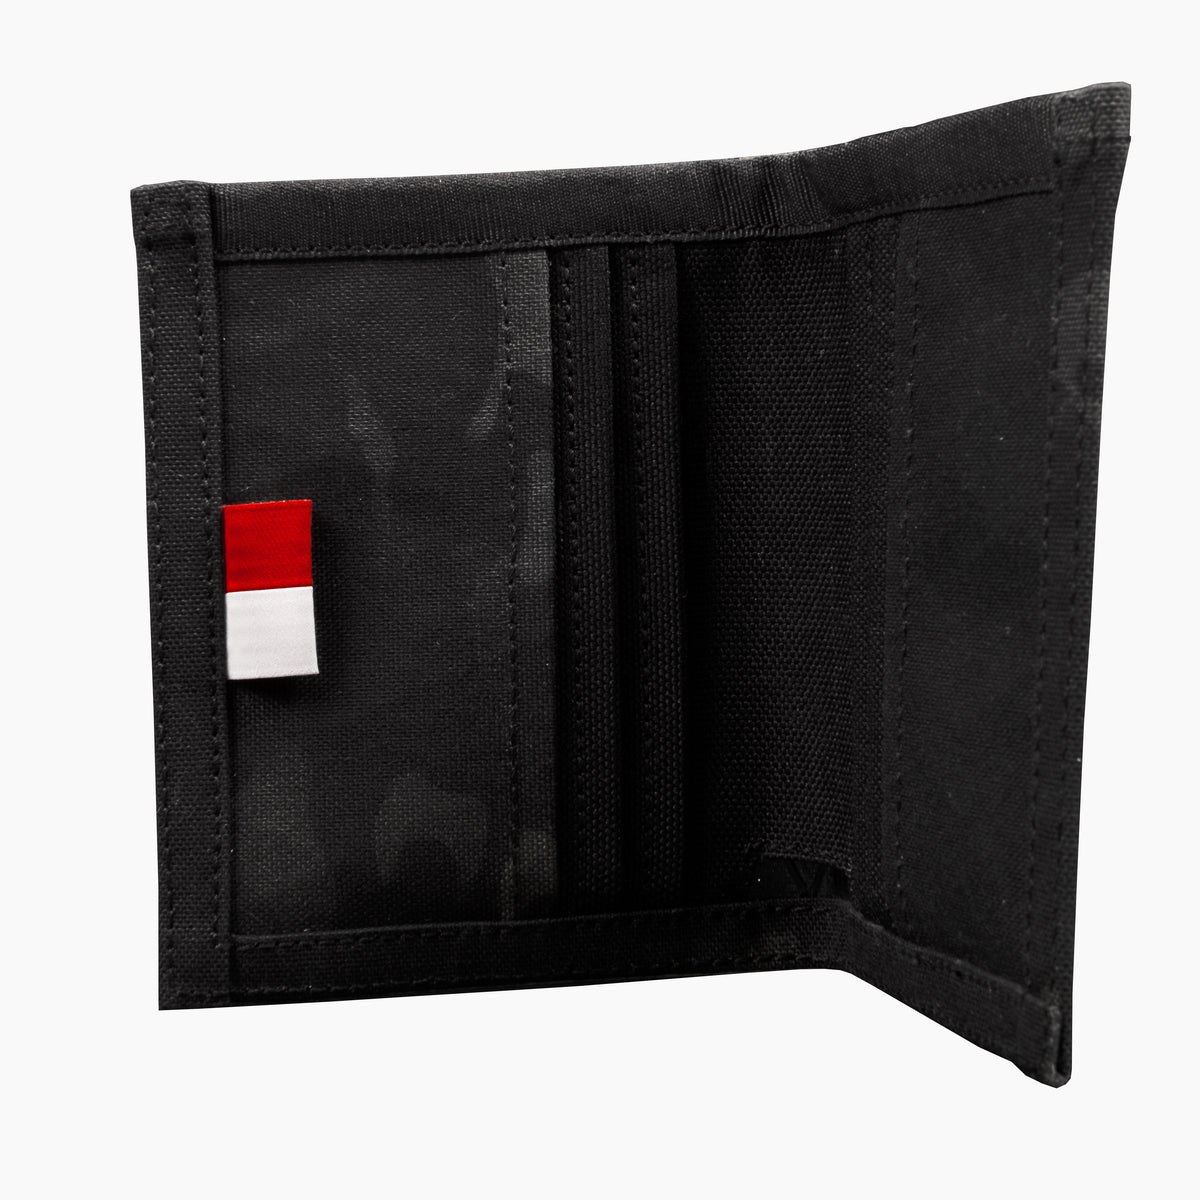 Treats - VX - Slim Wallet